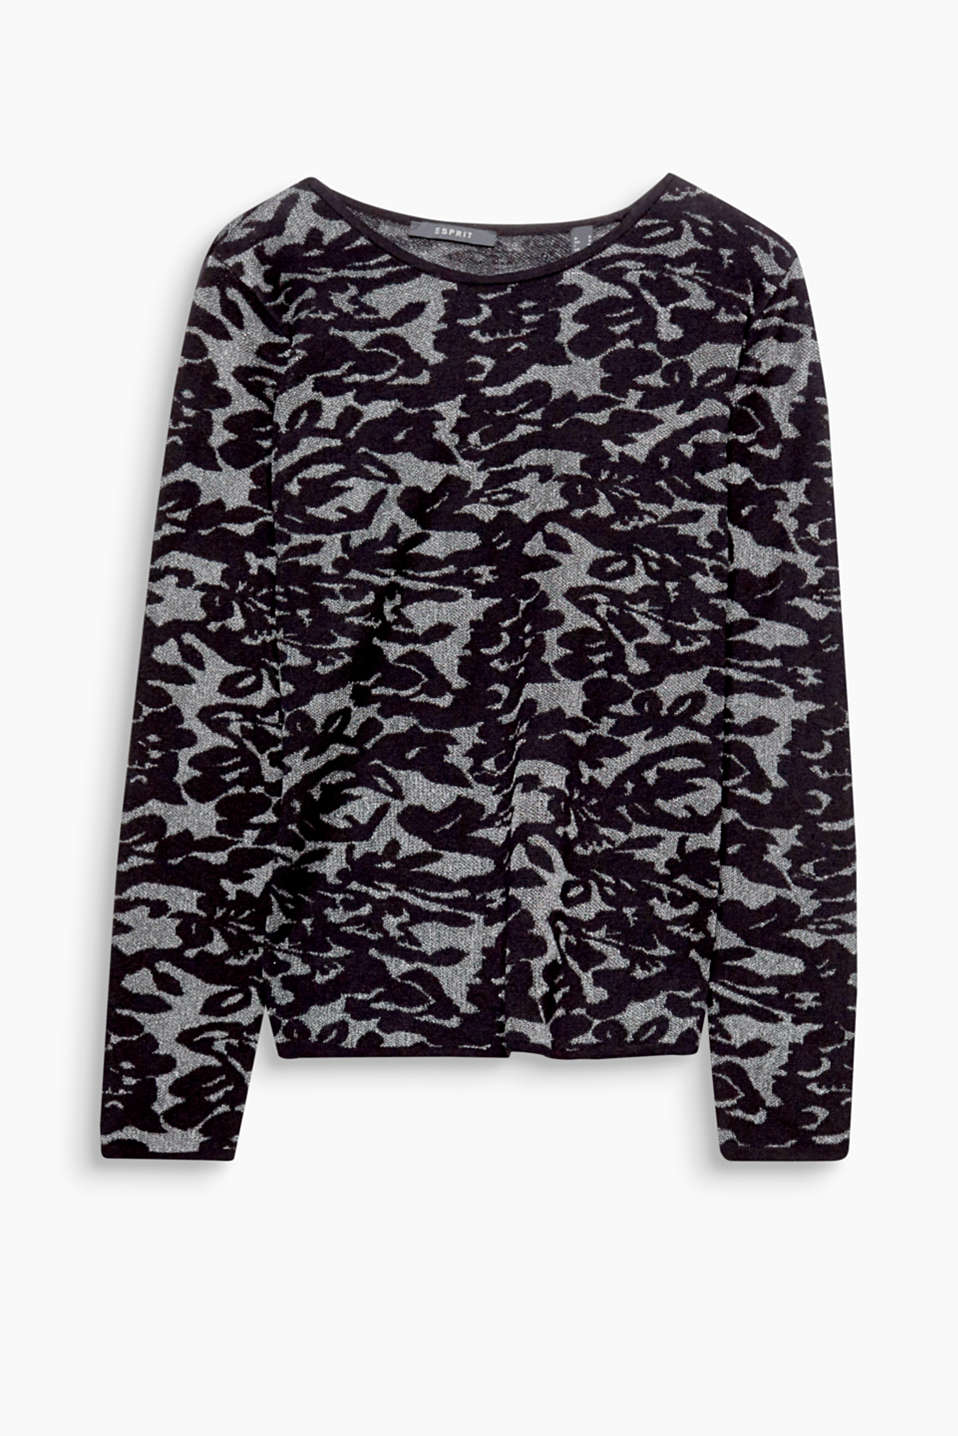 Fantastic for special occasions or simply chic with your fave skinnies: fitted jumper with floral intarsia